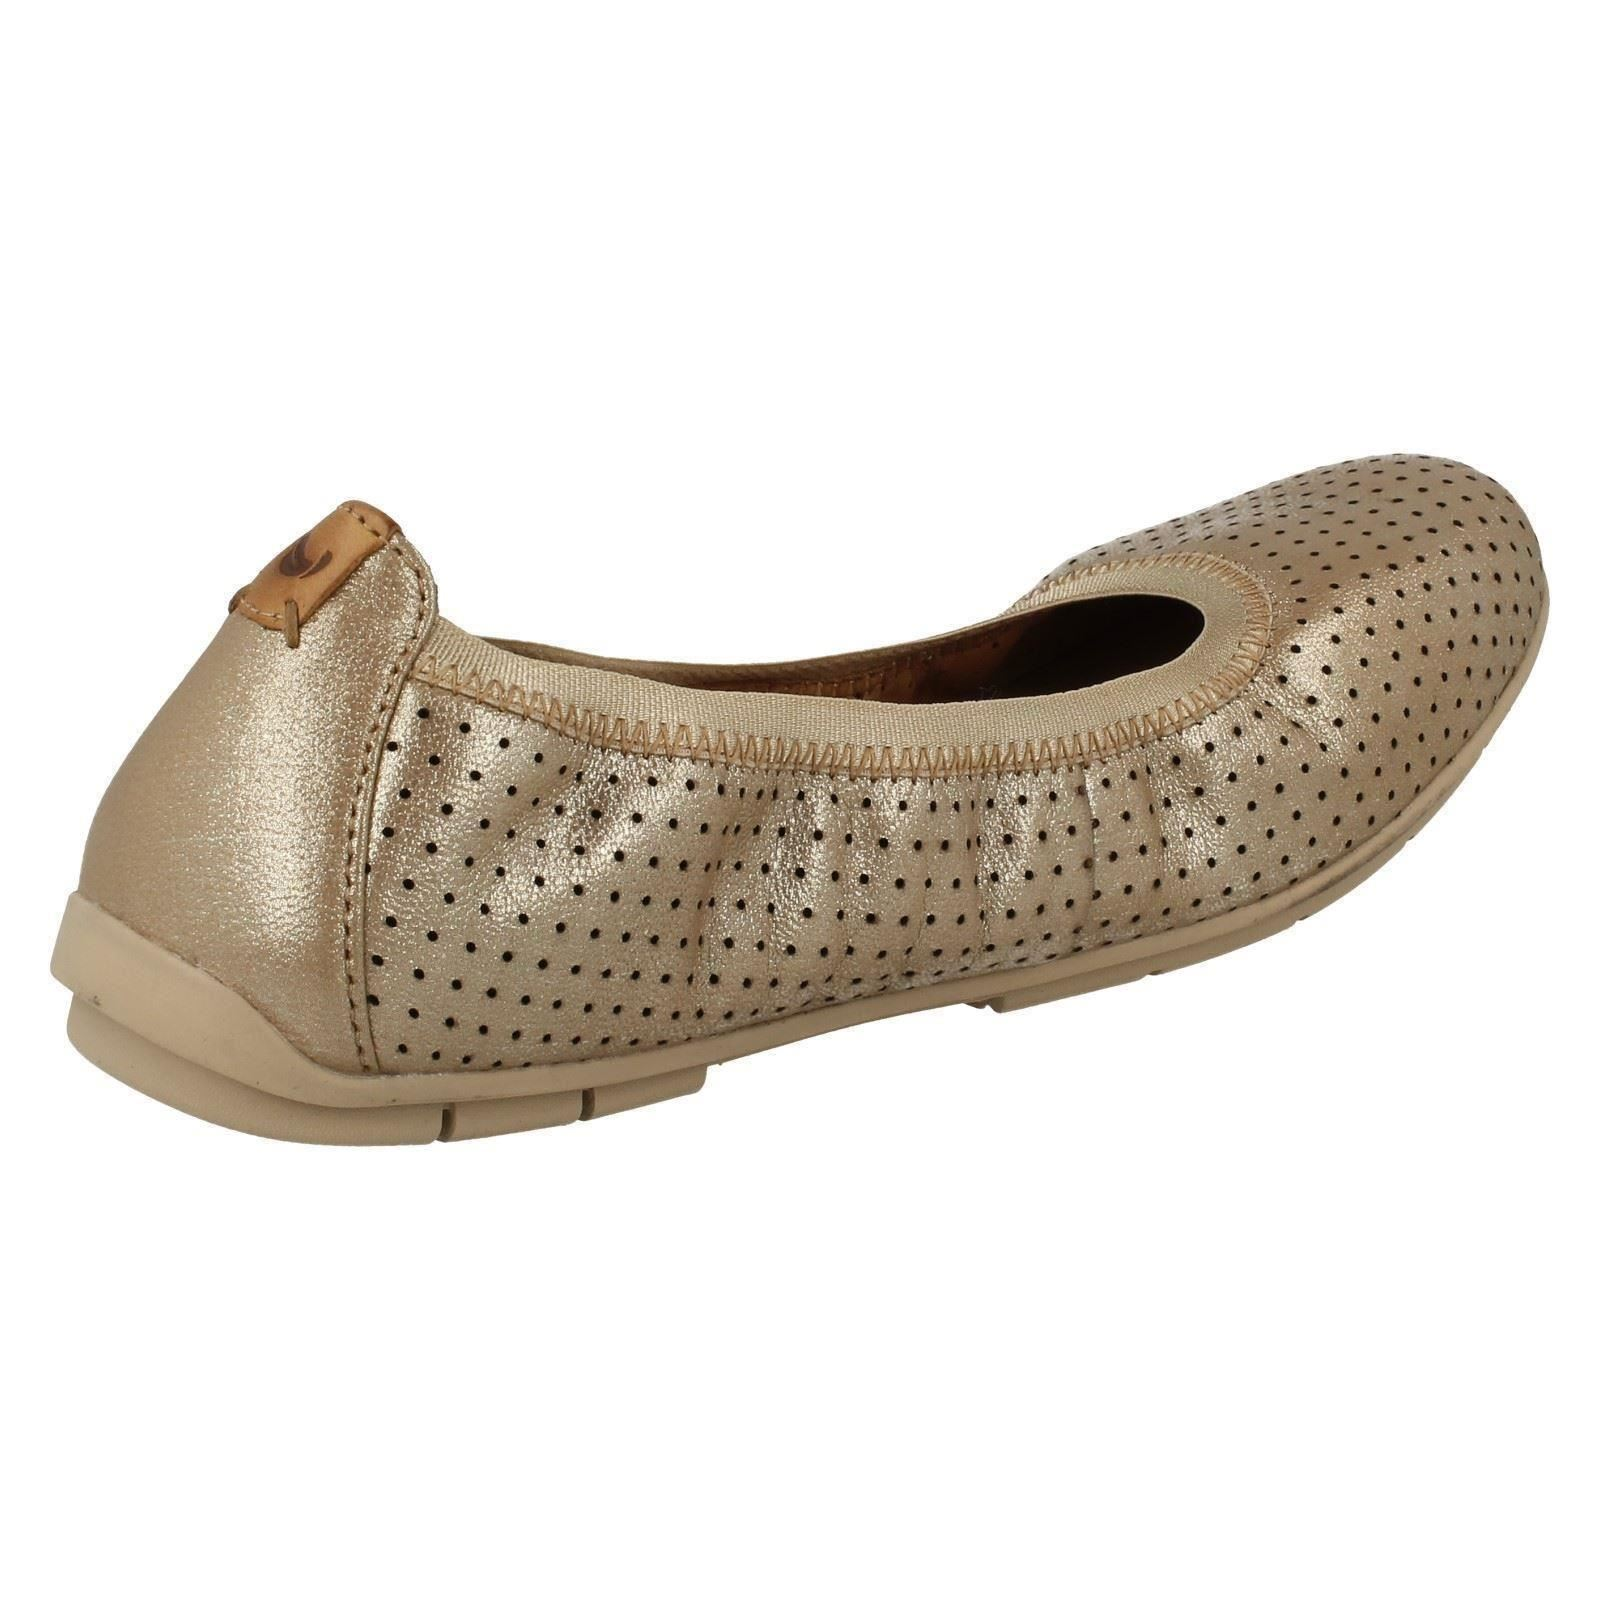 Ladies Unstructured By Clarks Flat Shoes Un Tract | EBay